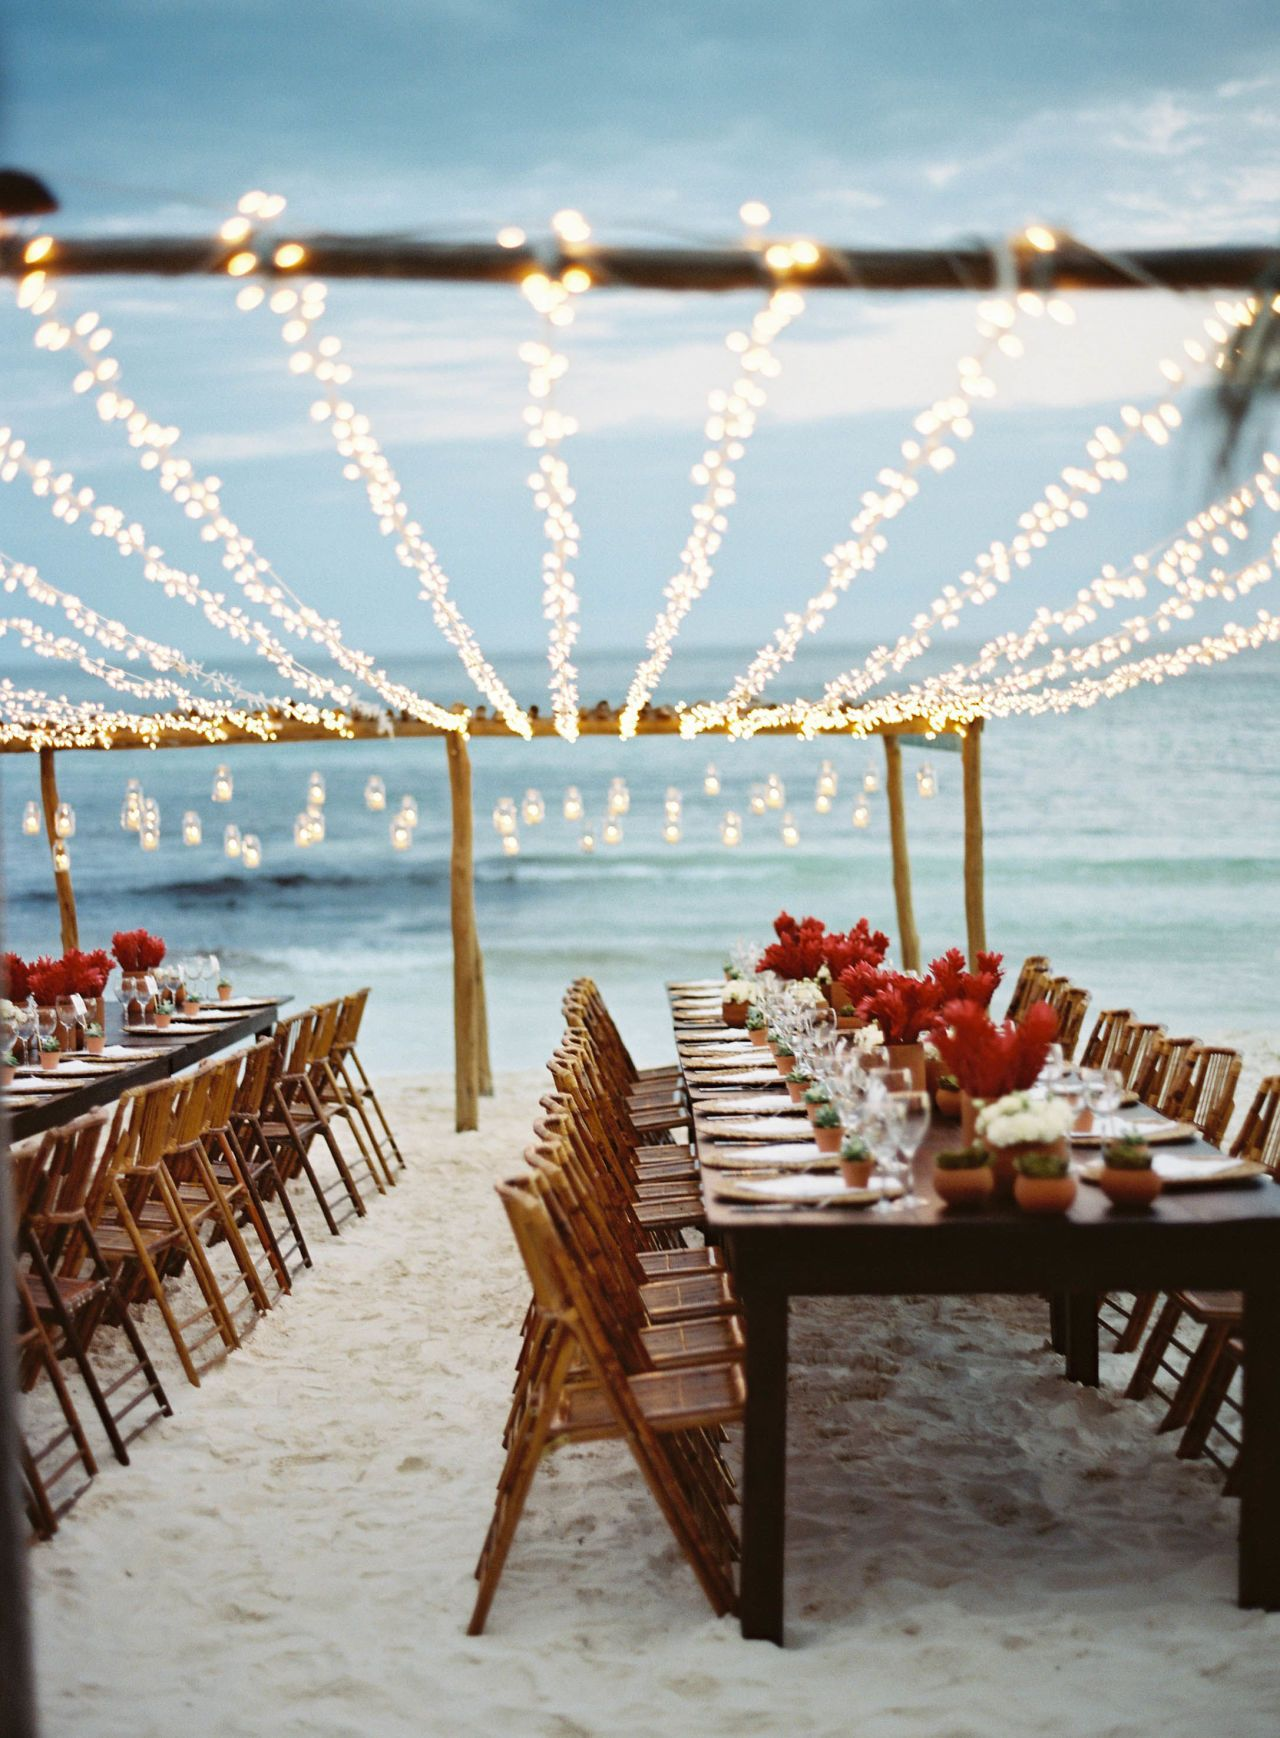 Beach Wedding Lights Red Flowers Photography Tec Petaja